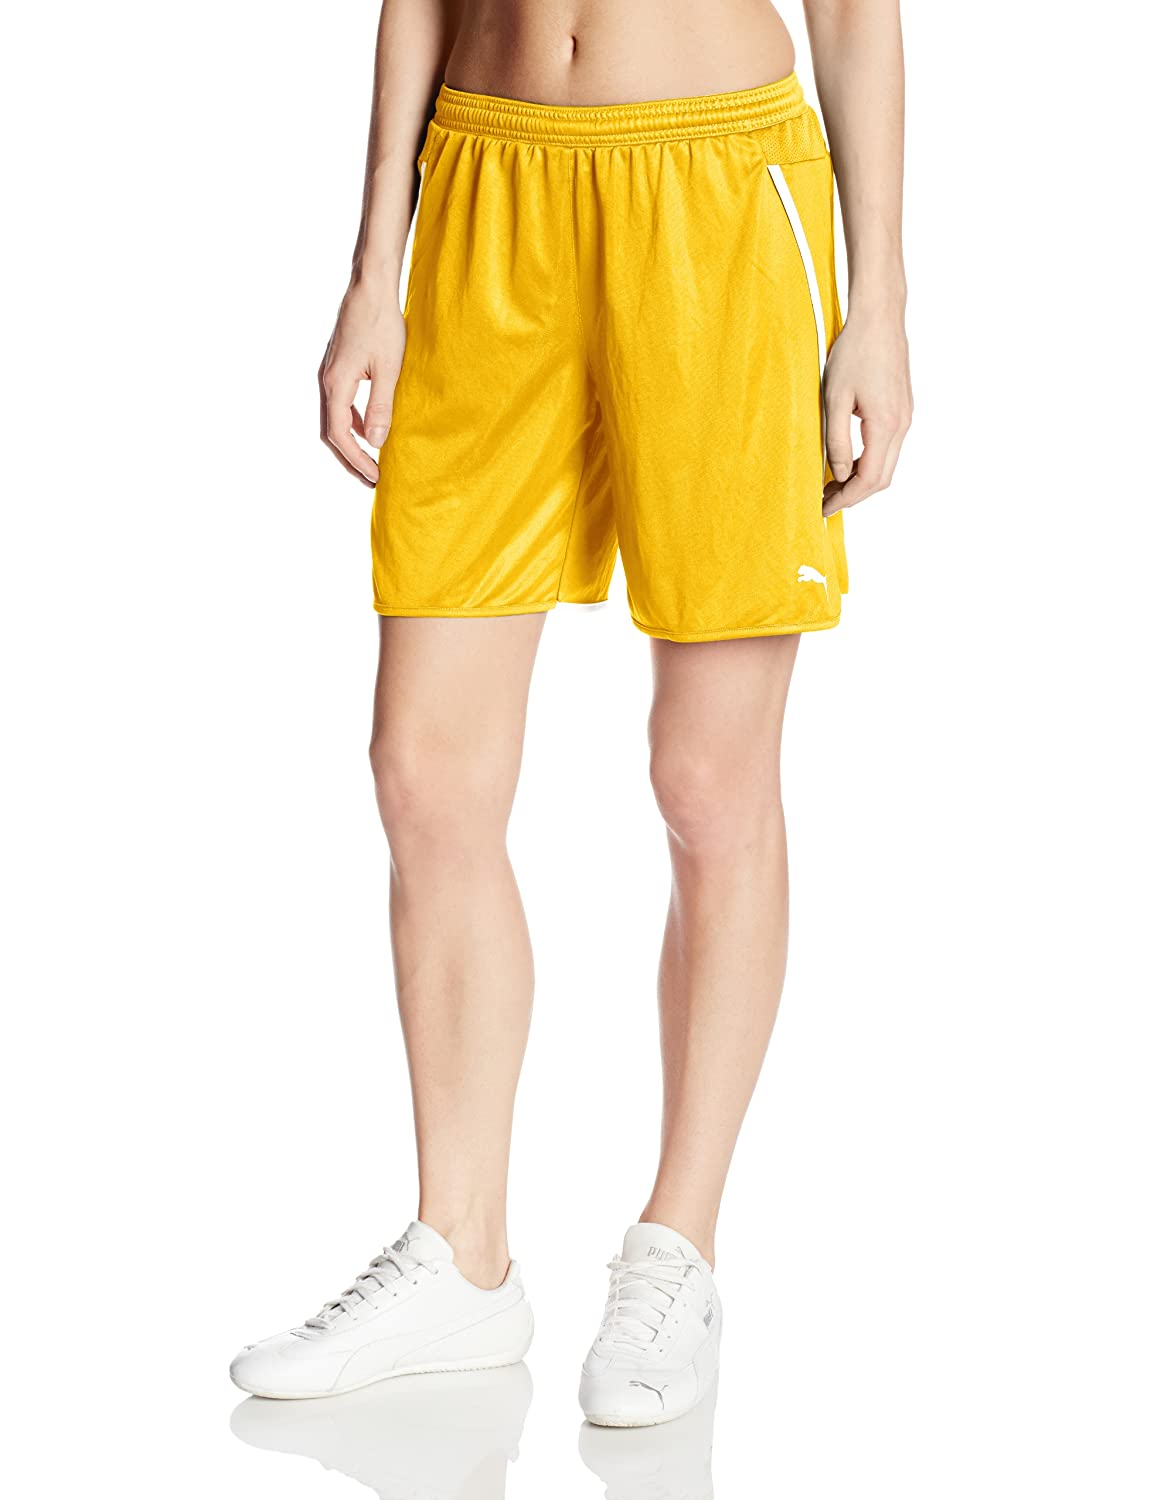 PUMA SHORTS レディース B00H2HNY9I XS|Team Yellow/White Team Yellow/White XS